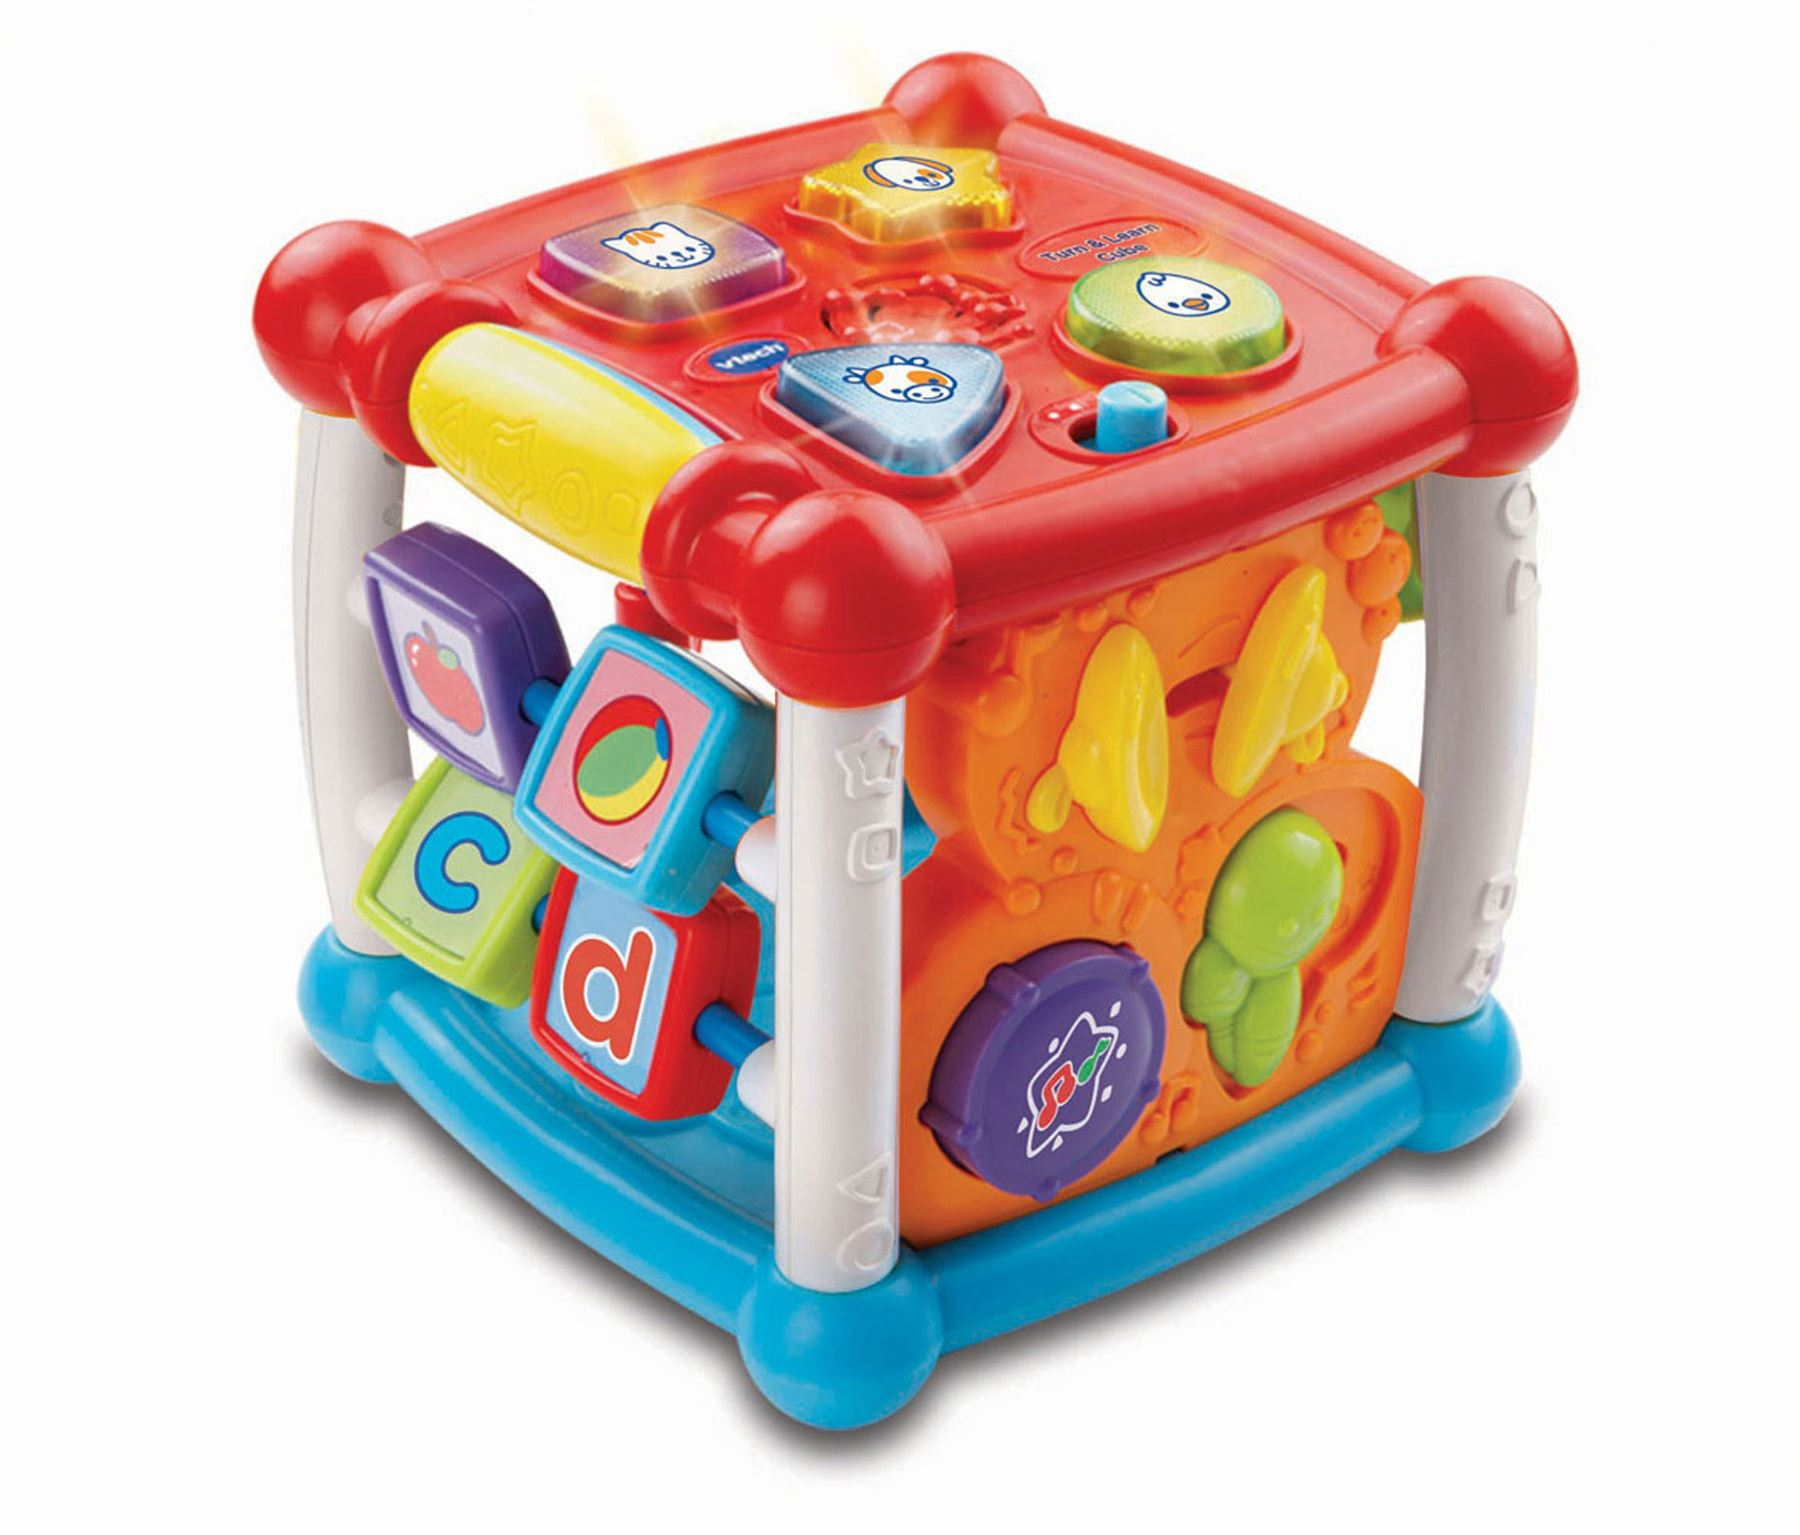 Vtech STACK SORT /& STORE TREE Educational Preschool Young Child Toy BNIB